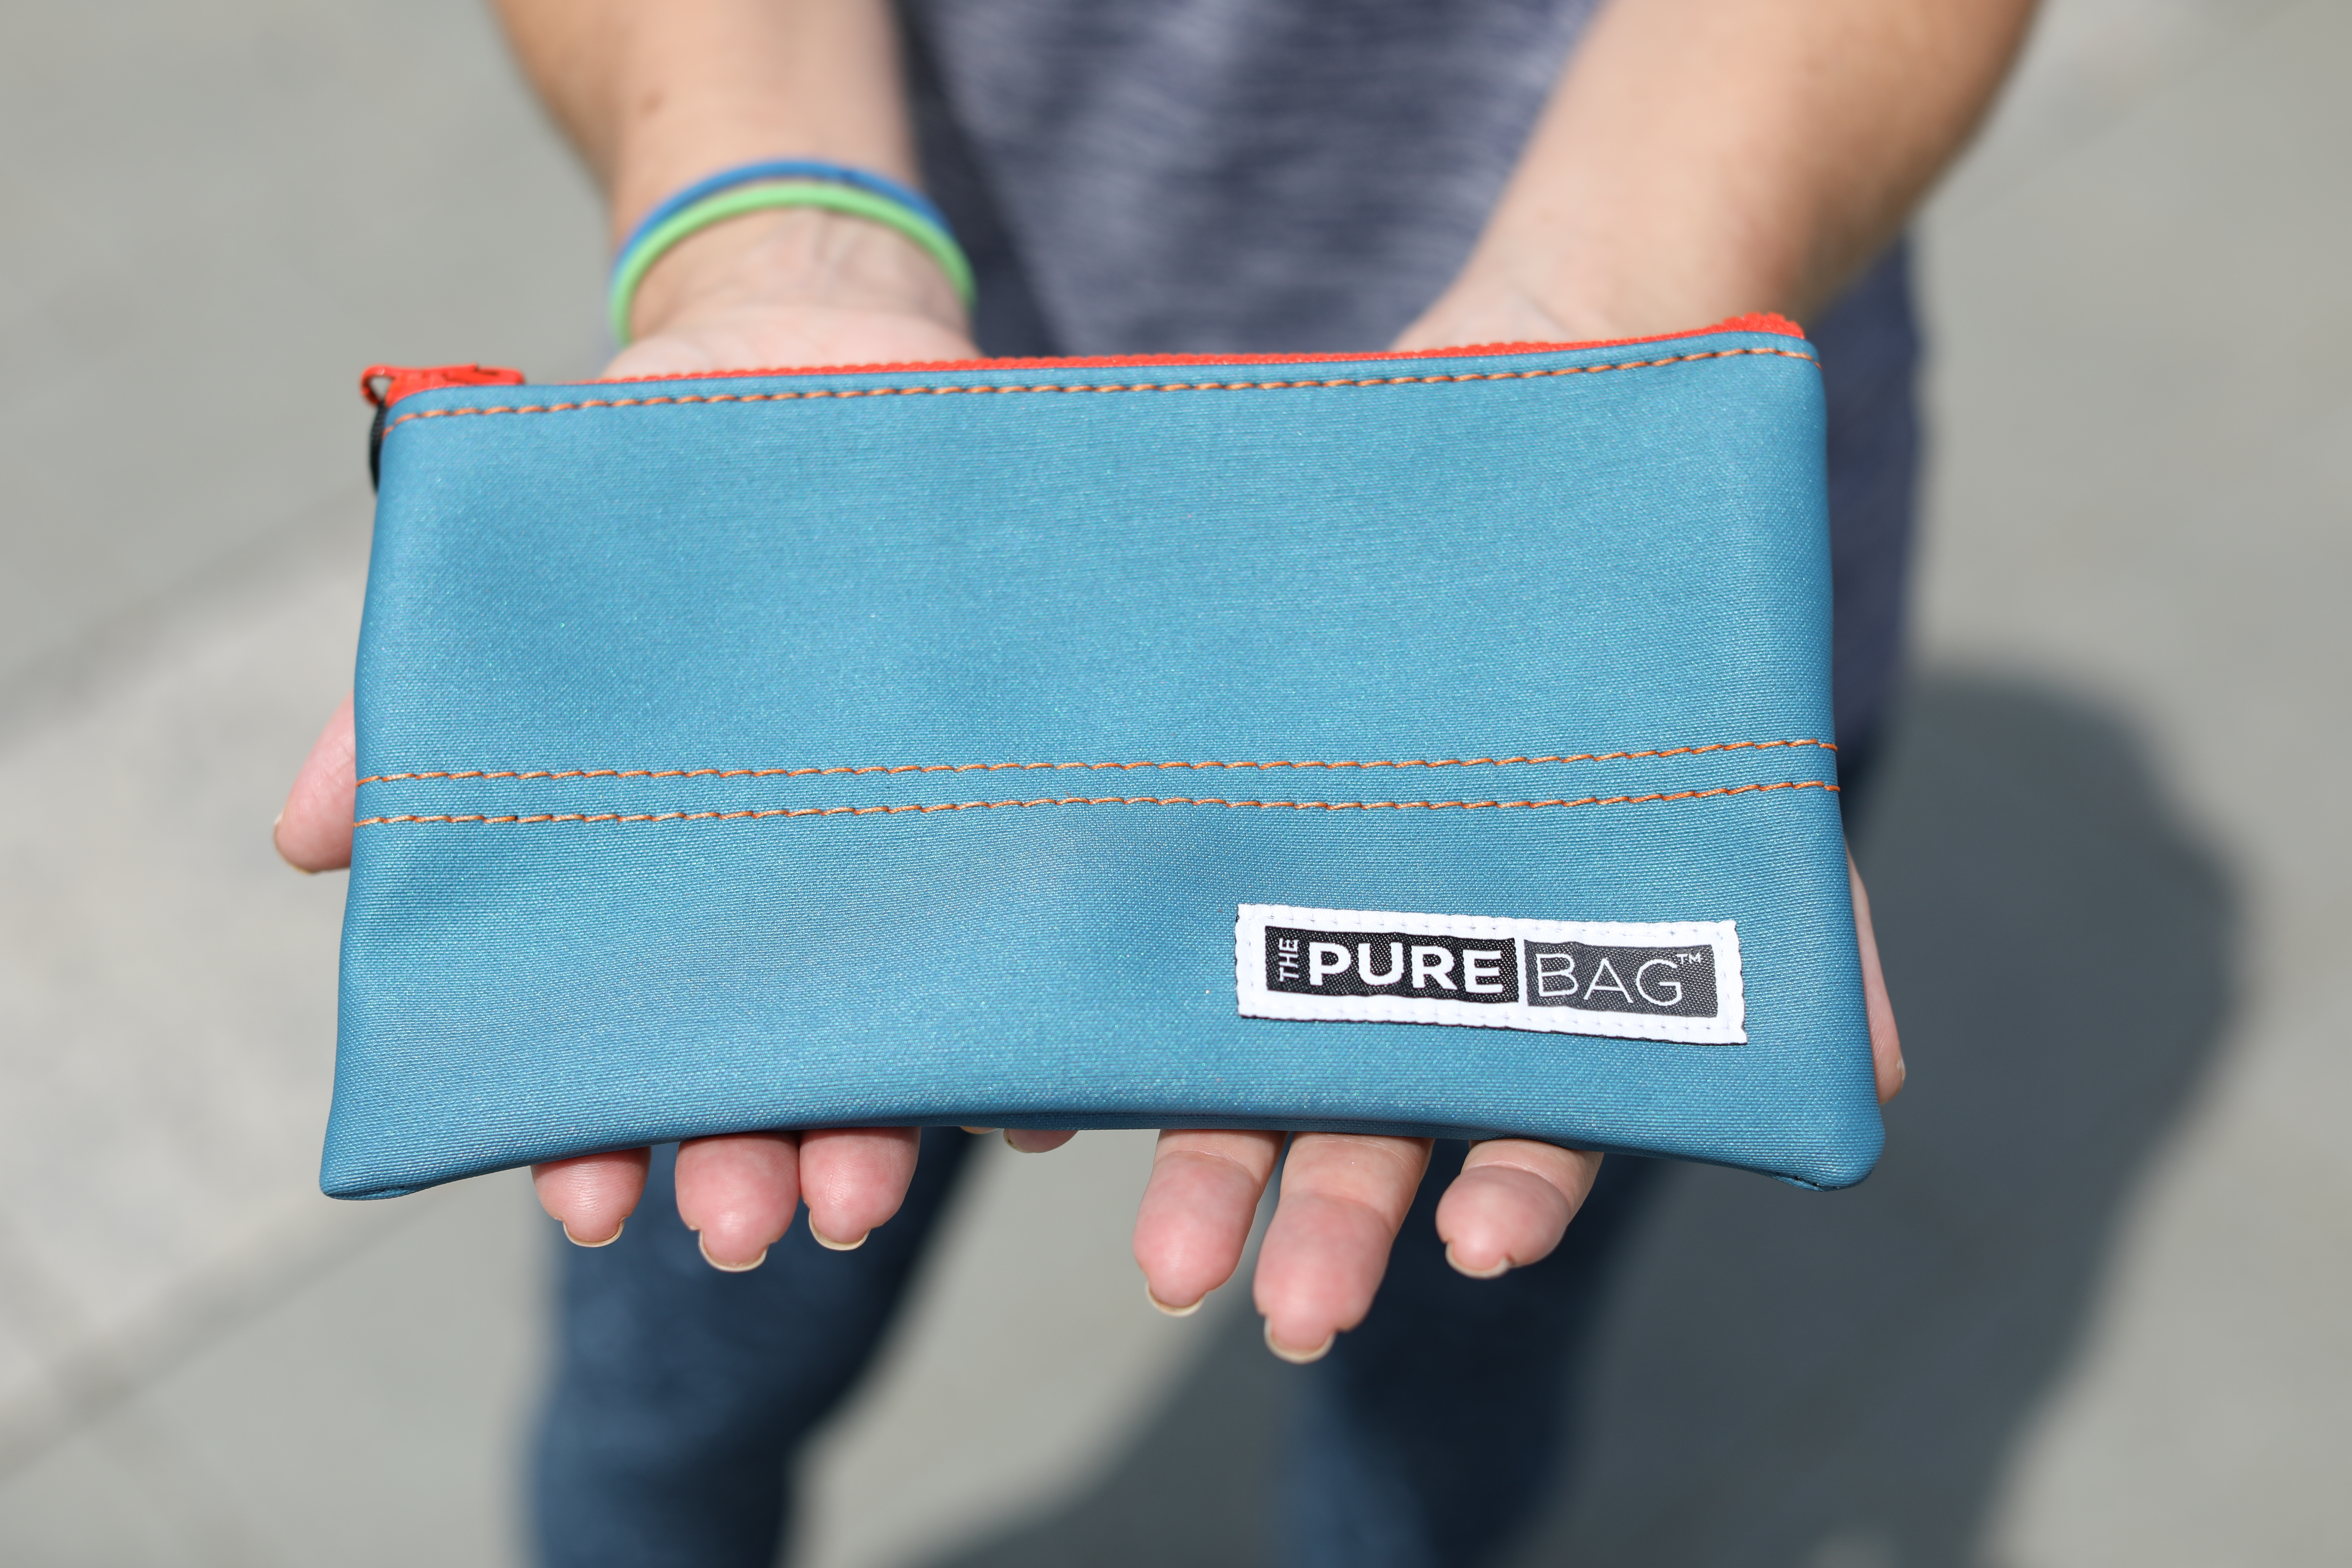 ThePureBag ZipPocket, a antimicrobial pouch perfect for holding keys and cellphones. DAVID SWANSON / Staff Photographer .